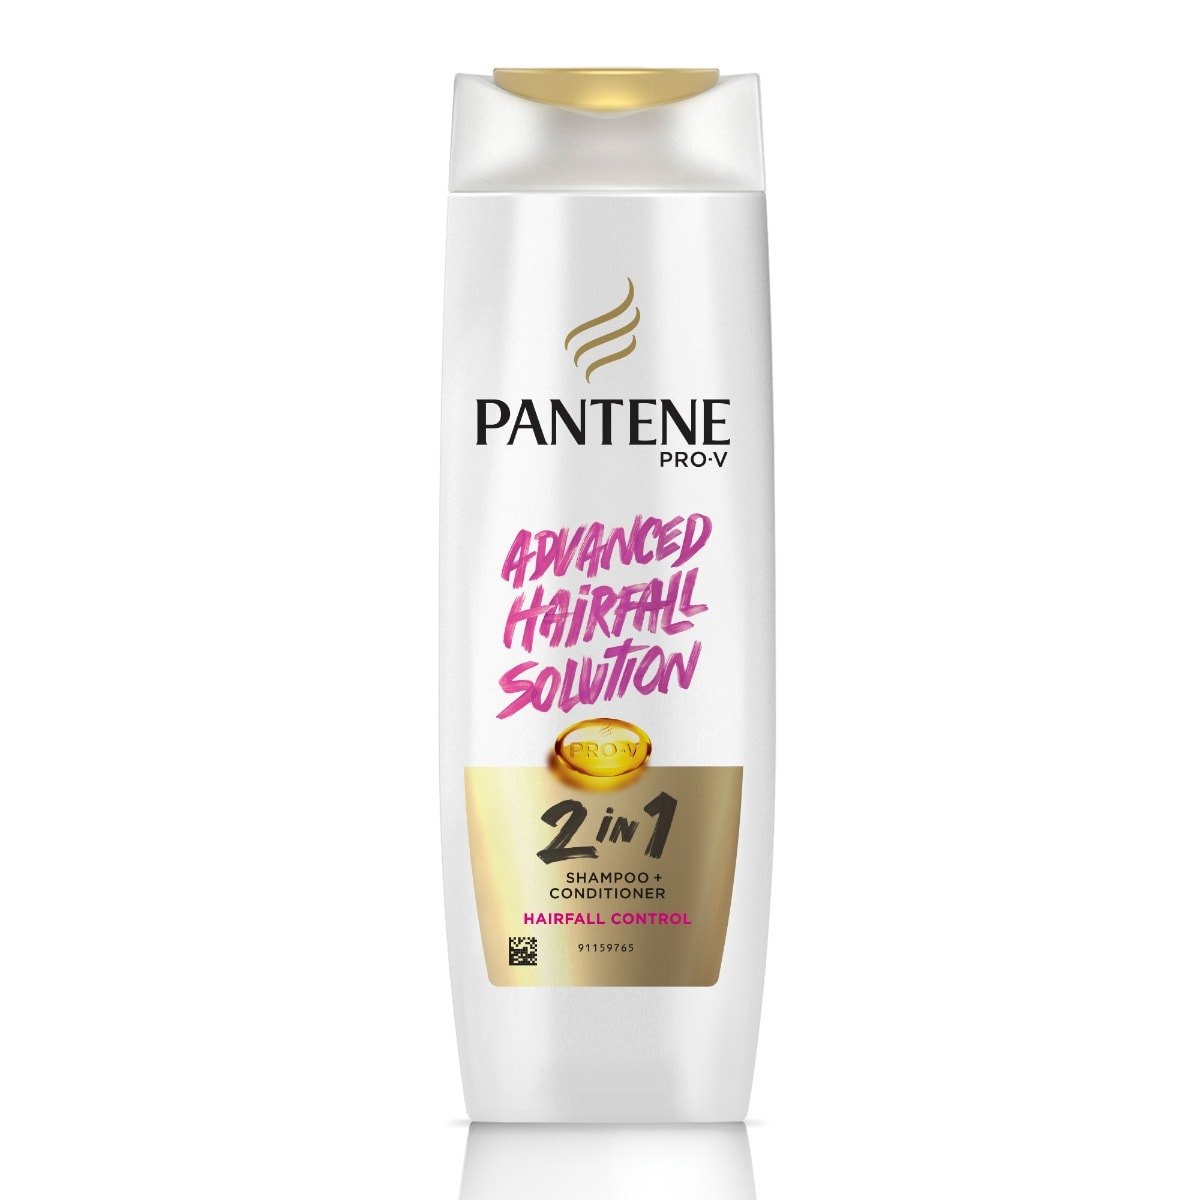 Pantene Pro-V 2 In 1 Hair Fall Control Shampoo + Conditioner, 180 ml